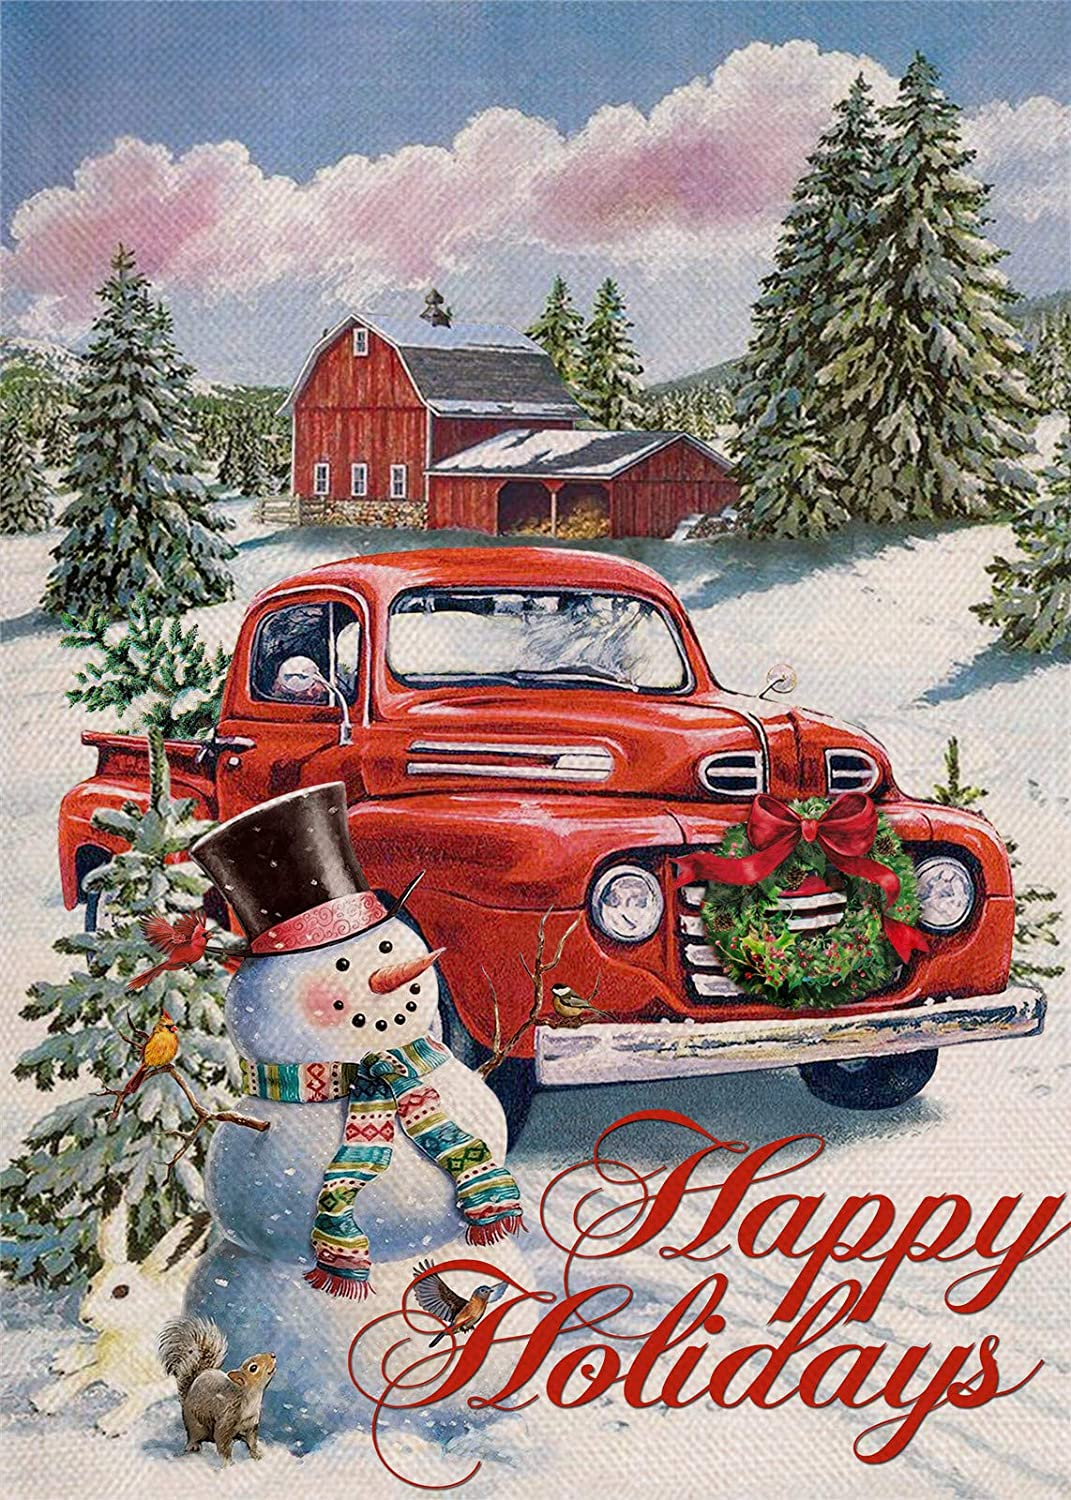 Covido Home Decorative Happy Holidays Christmas Garden Flag Country Red Truck House Yard Xmas Tree Snowman Barn Decor, Winter Holiday Farmhouse Outside Decoration Outdoor Small Flag Double Sided 12x18